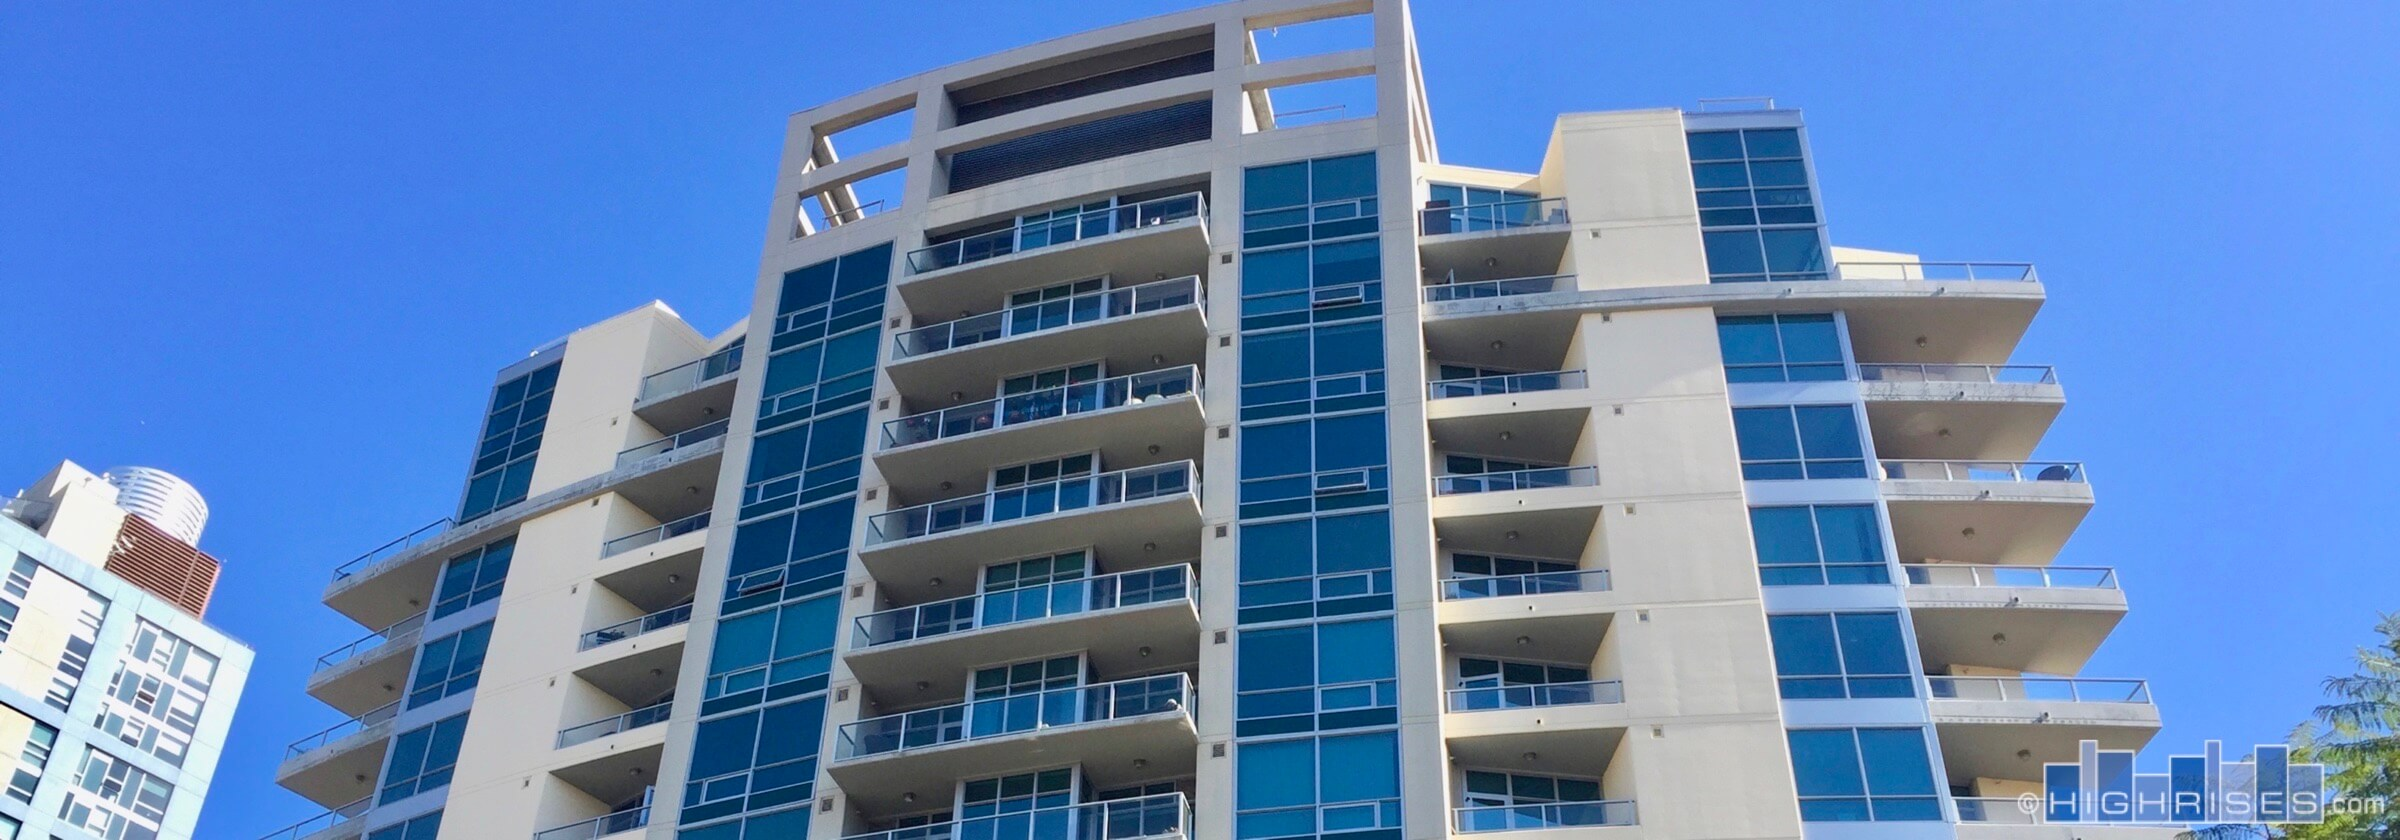 Park Terrace Condos Of San Diego Ca 253 10th Ave Amp 206